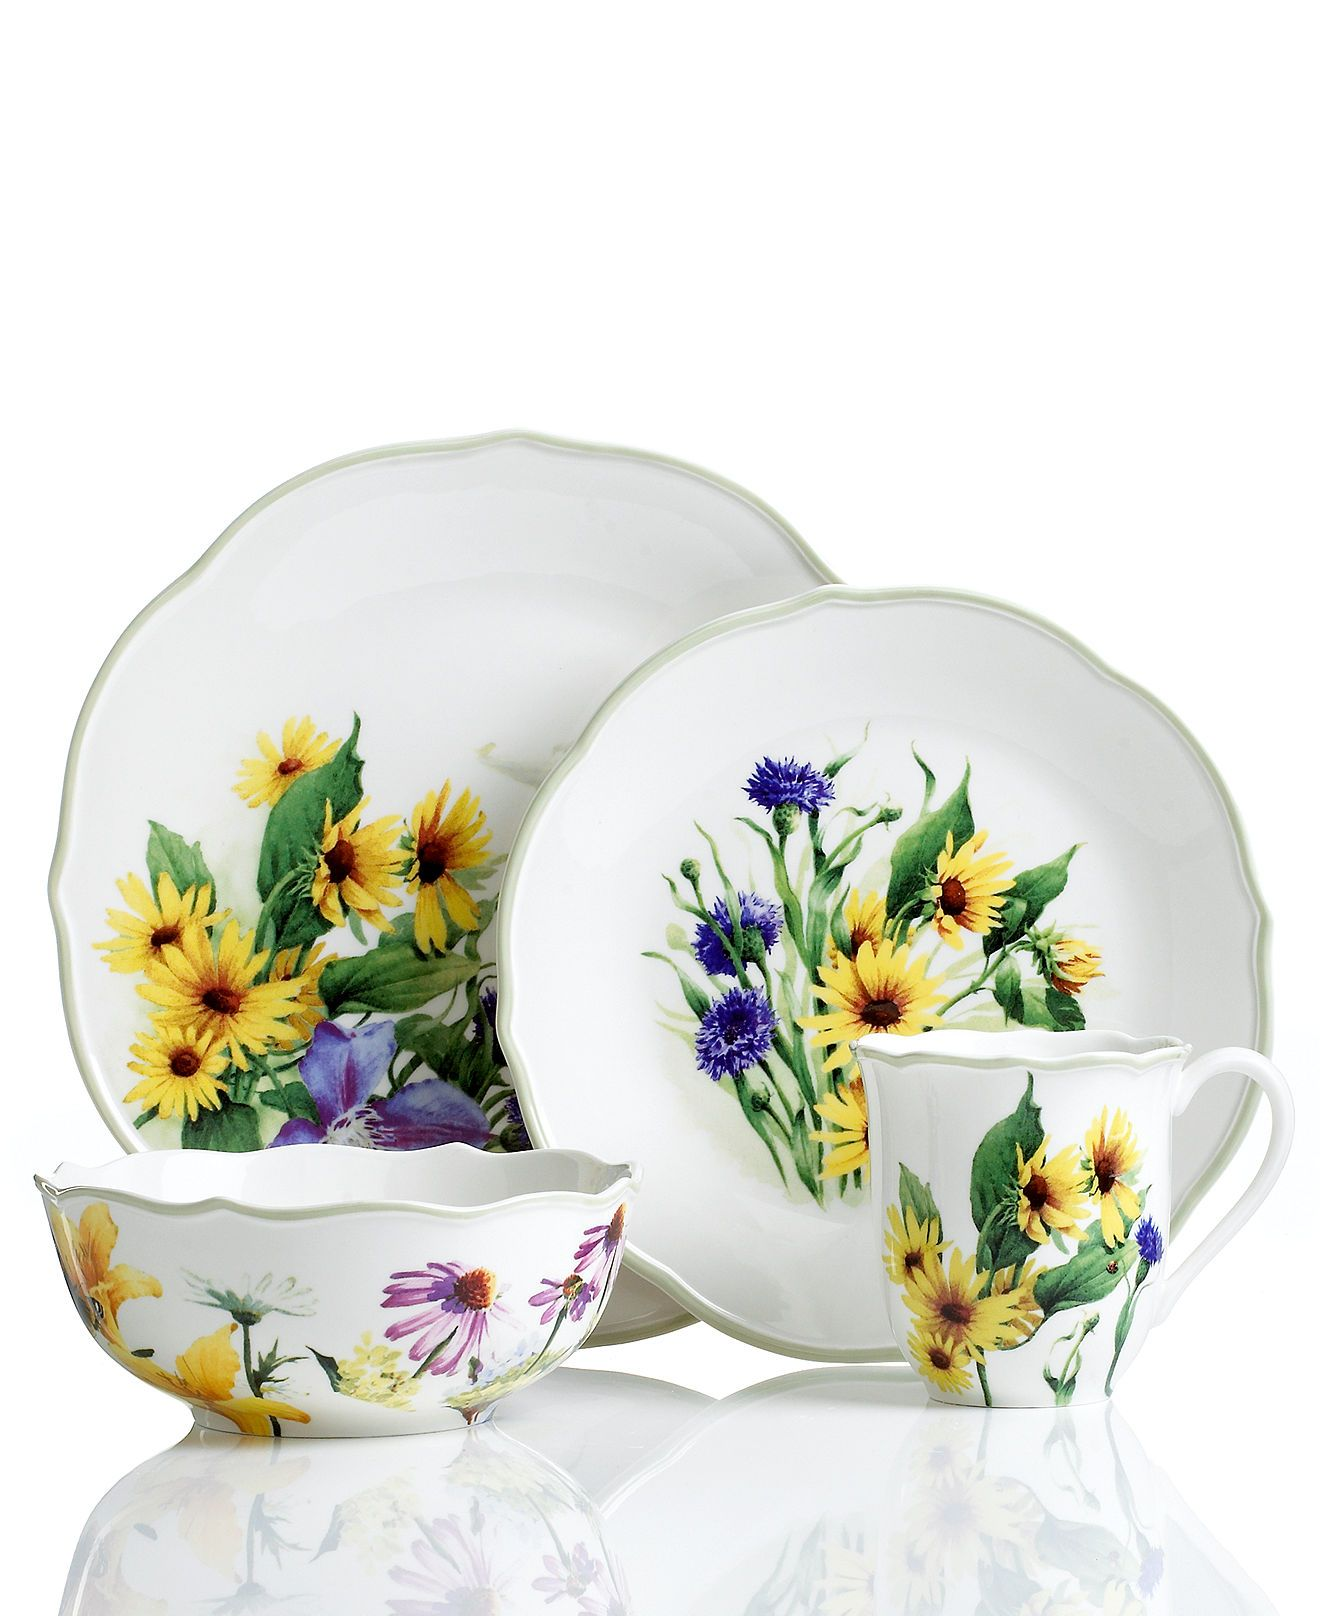 floral meadow sunflower dishes from lenox dinnerware replacing my everyday dinnerware with these floral meadow - Lenox Dinnerware